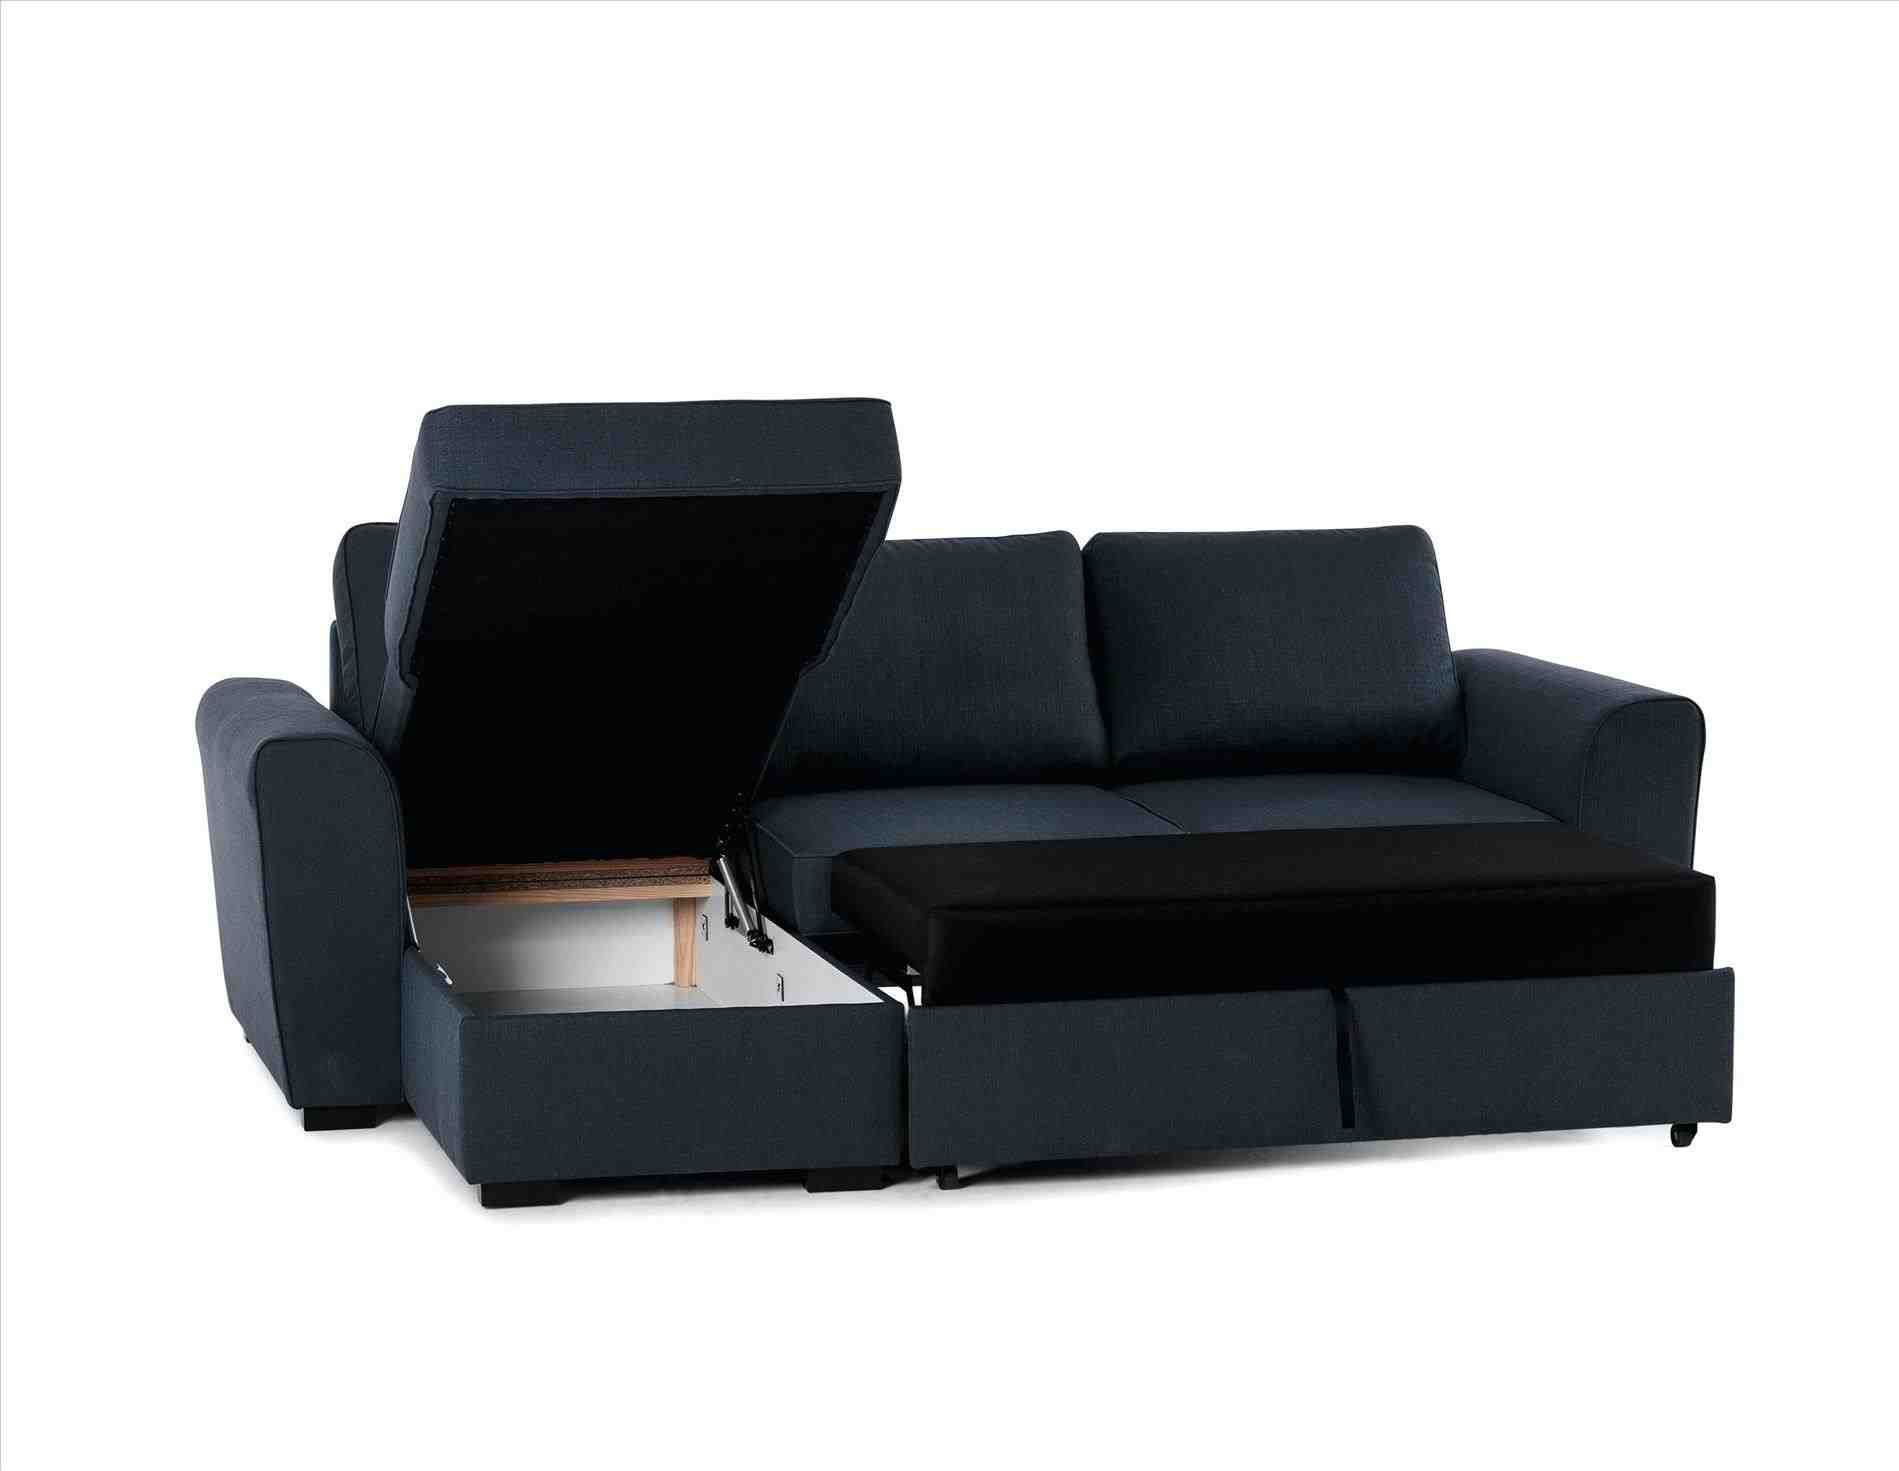 Cheap Sofa Beds Uk Cheap Sofa Bed Singapore Clearance Melbourne